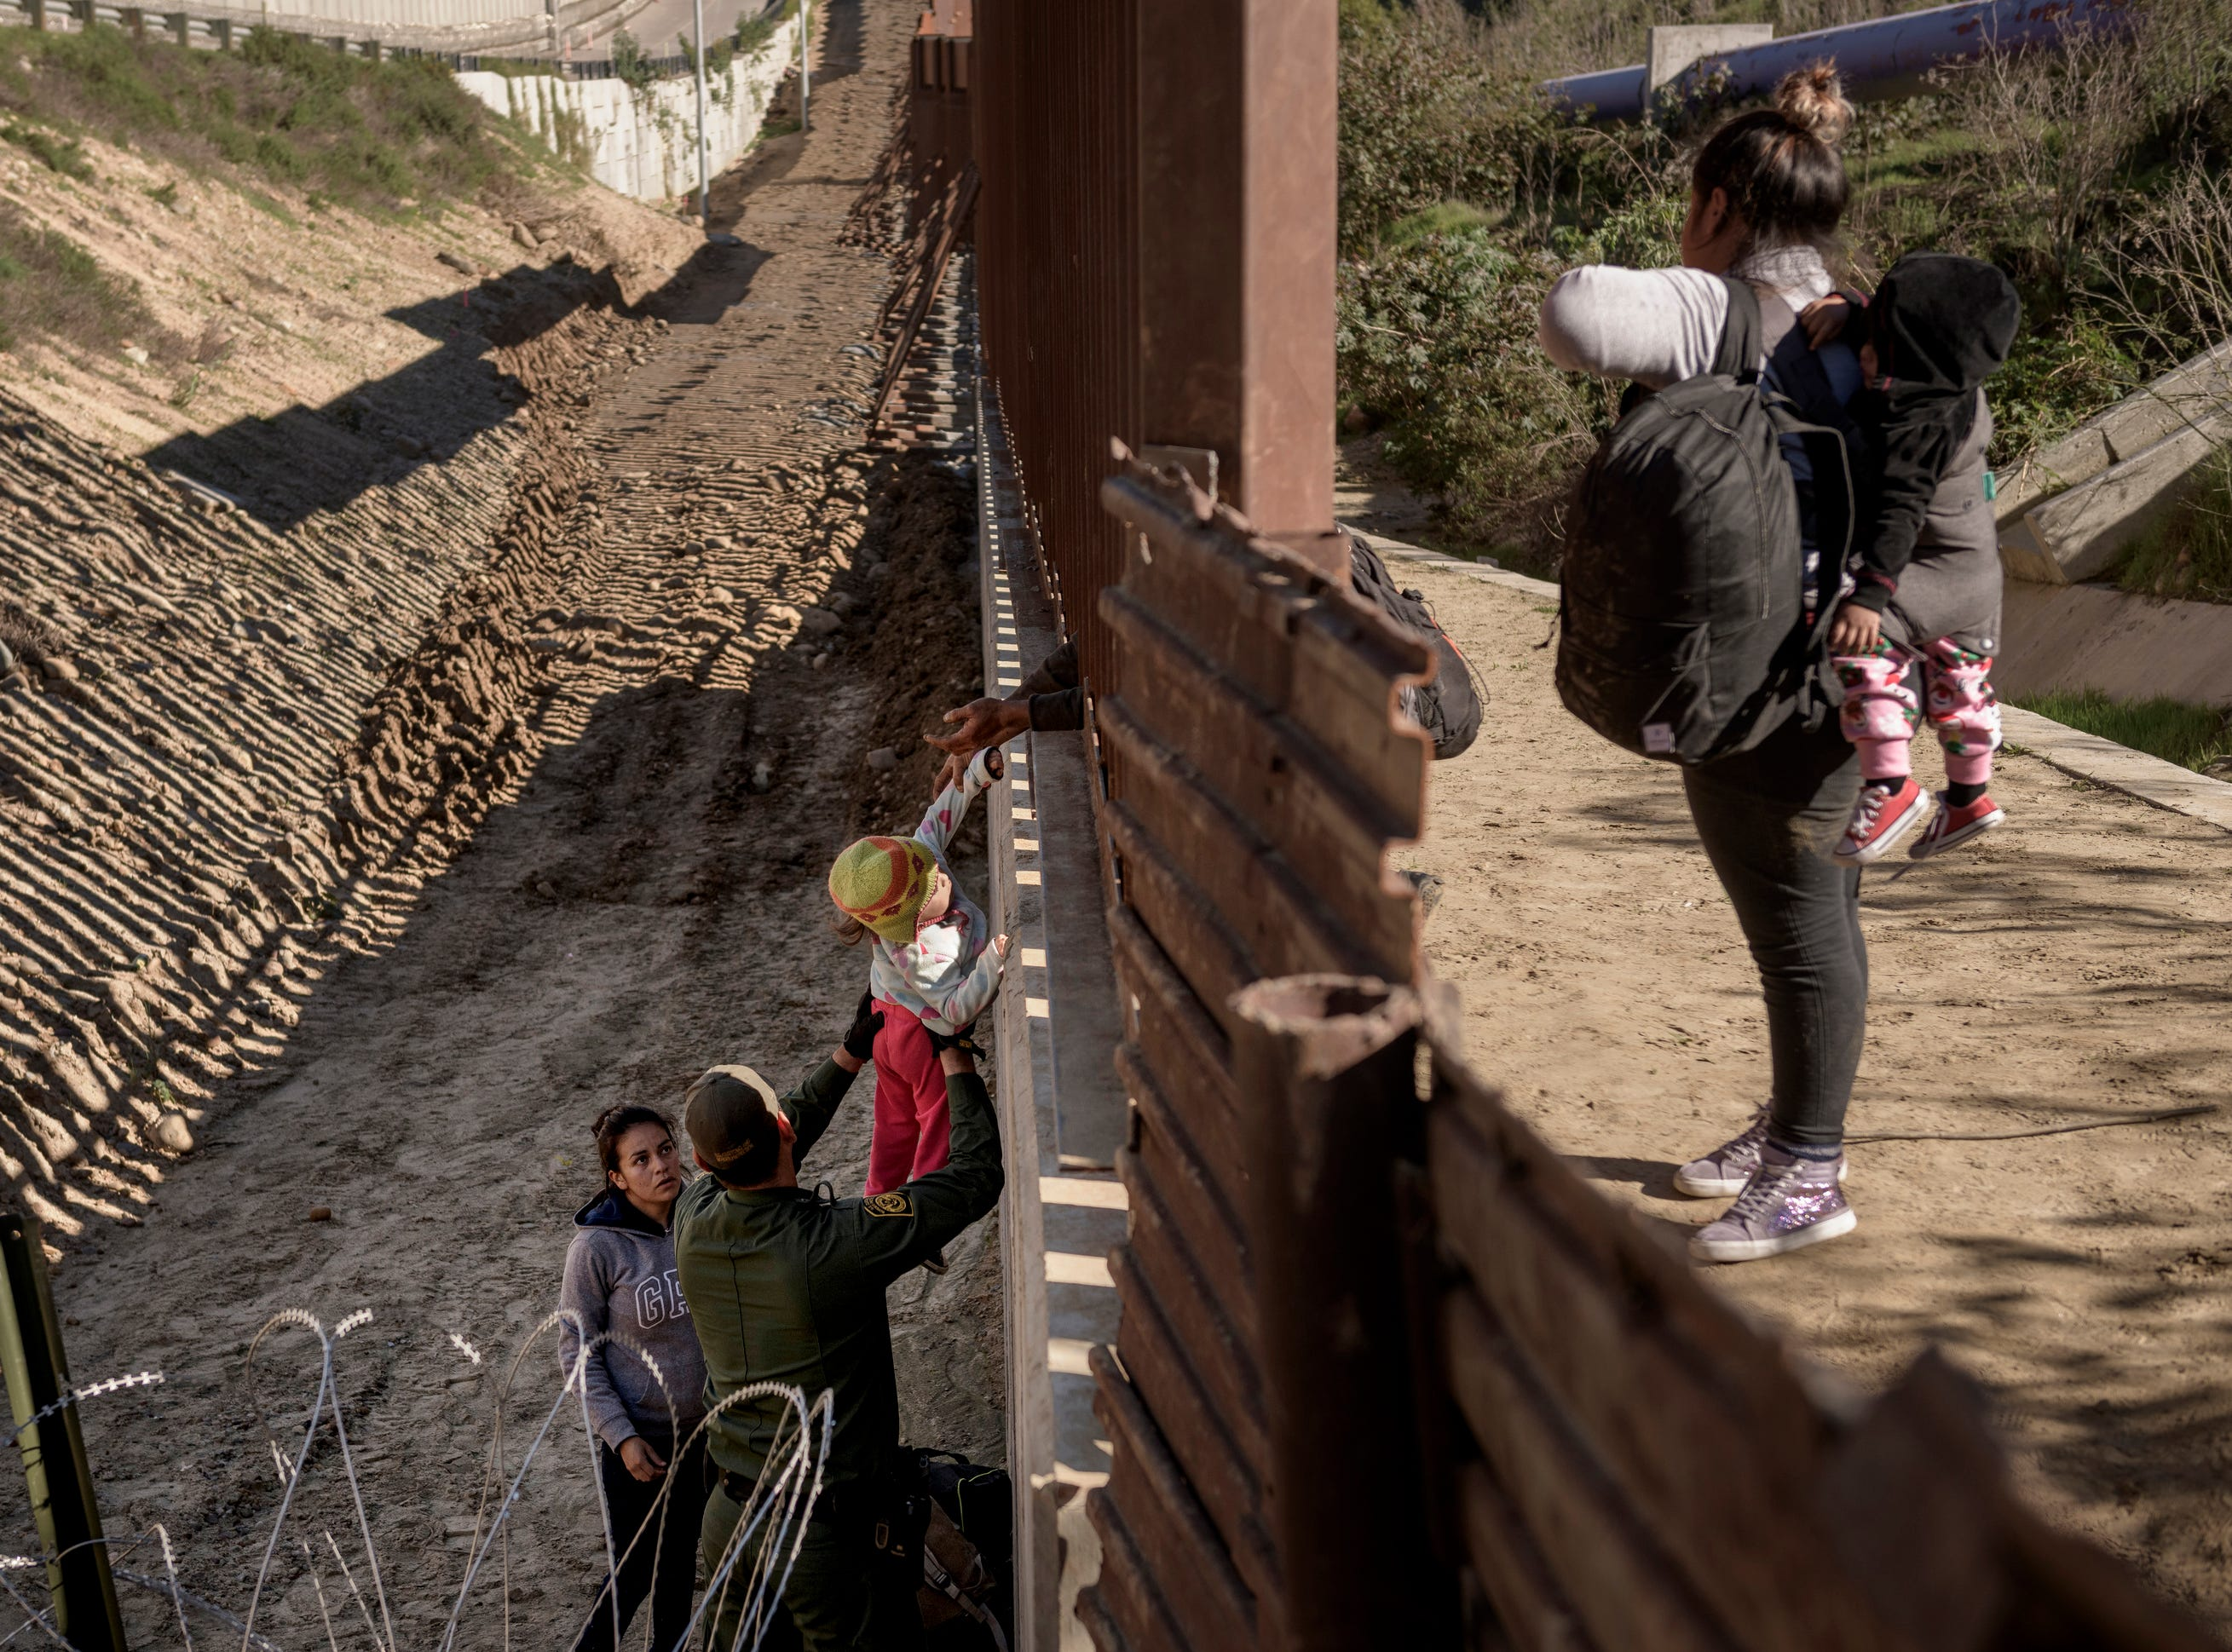 A Border Patrol officer holds a baby as he helps a migrant to go down after they jump the border fence to get into the U.S. side to San Diego, Calif., from Tijuana, Mexico, Saturday, Dec. 29, 2018.